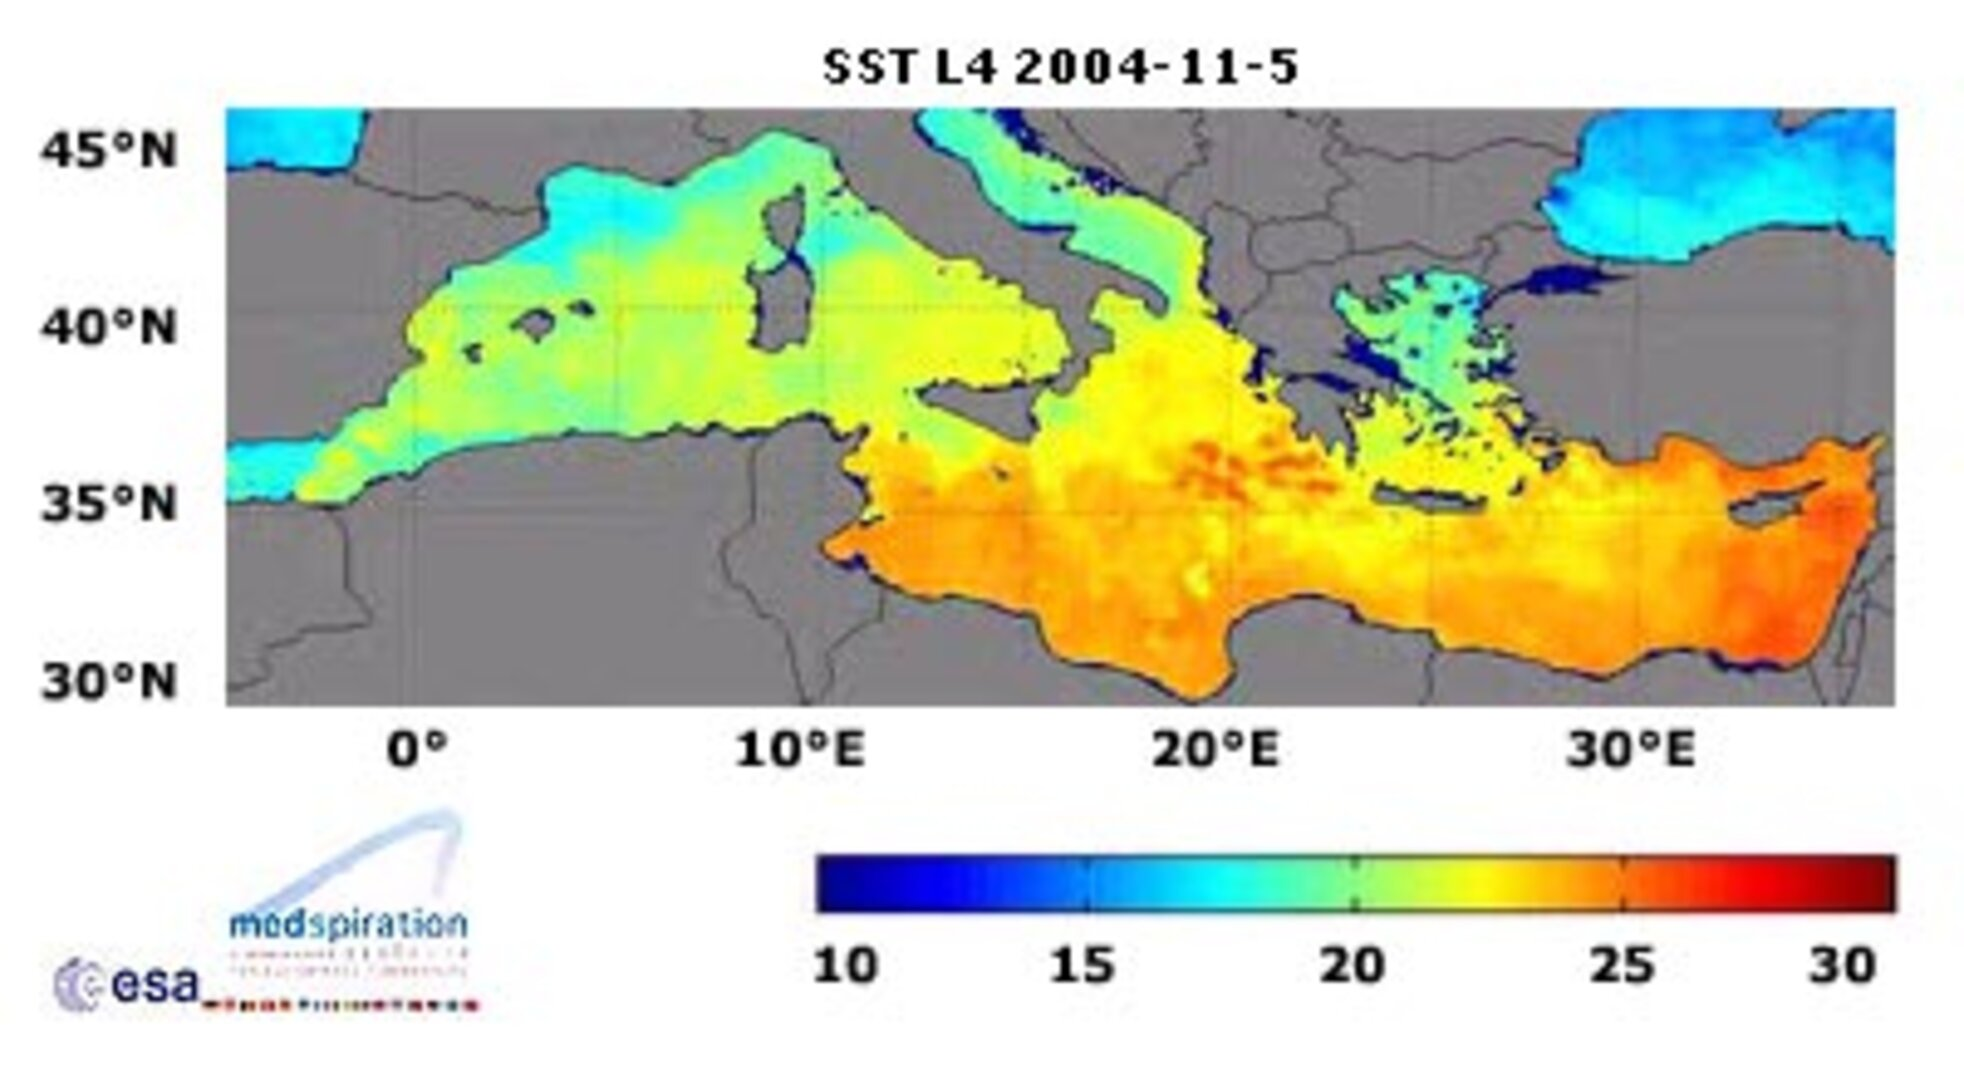 https://www.esa.int/var/esa/storage/images/esa_multimedia/images/2004/12/mediterranean_sea_surface_temperature_map/10063294-3-eng-GB/Mediterranean_sea_surface_temperature_map_pillars.jpg